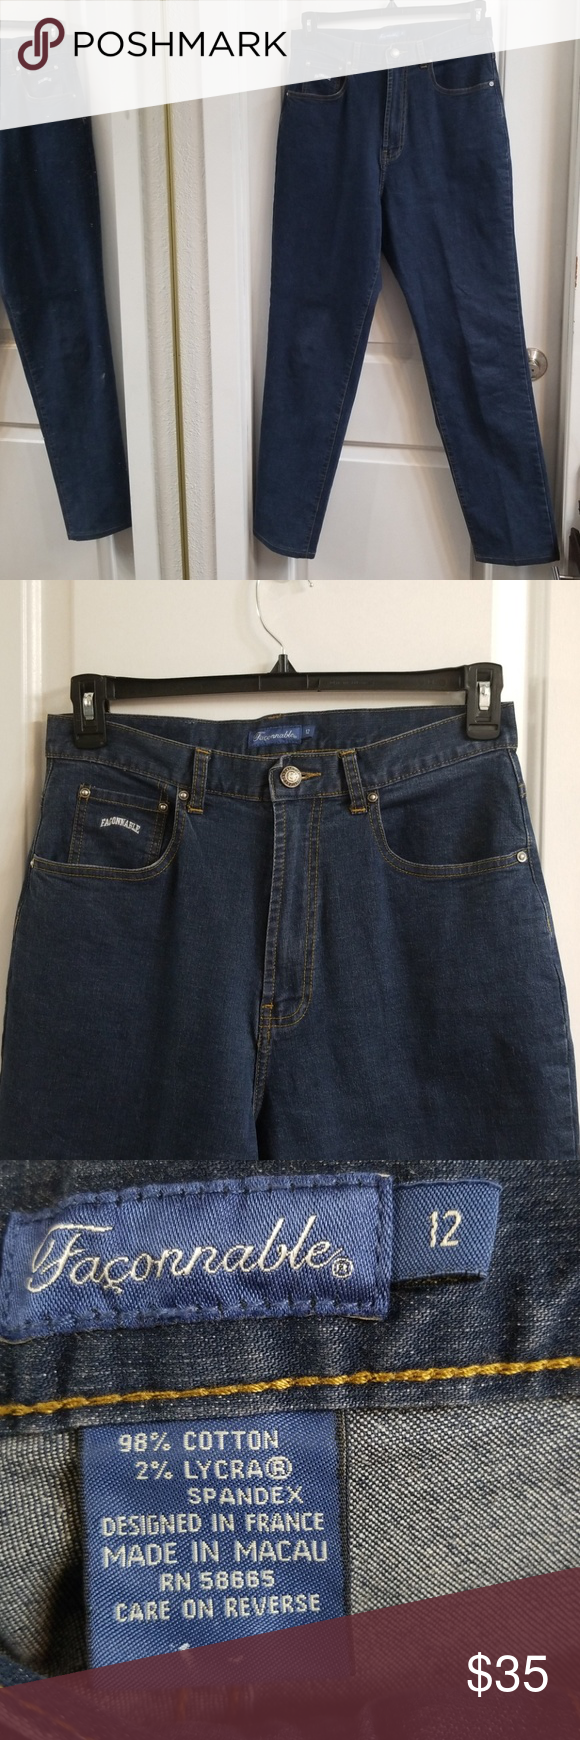 aa4567203f2 Ladies size 12 Faconnable jeans Ladies size 12 vintage high waist  Faconnable jeans Waist is 15 inches laying flat 30 inch inseam Great  condition Faconnable ...